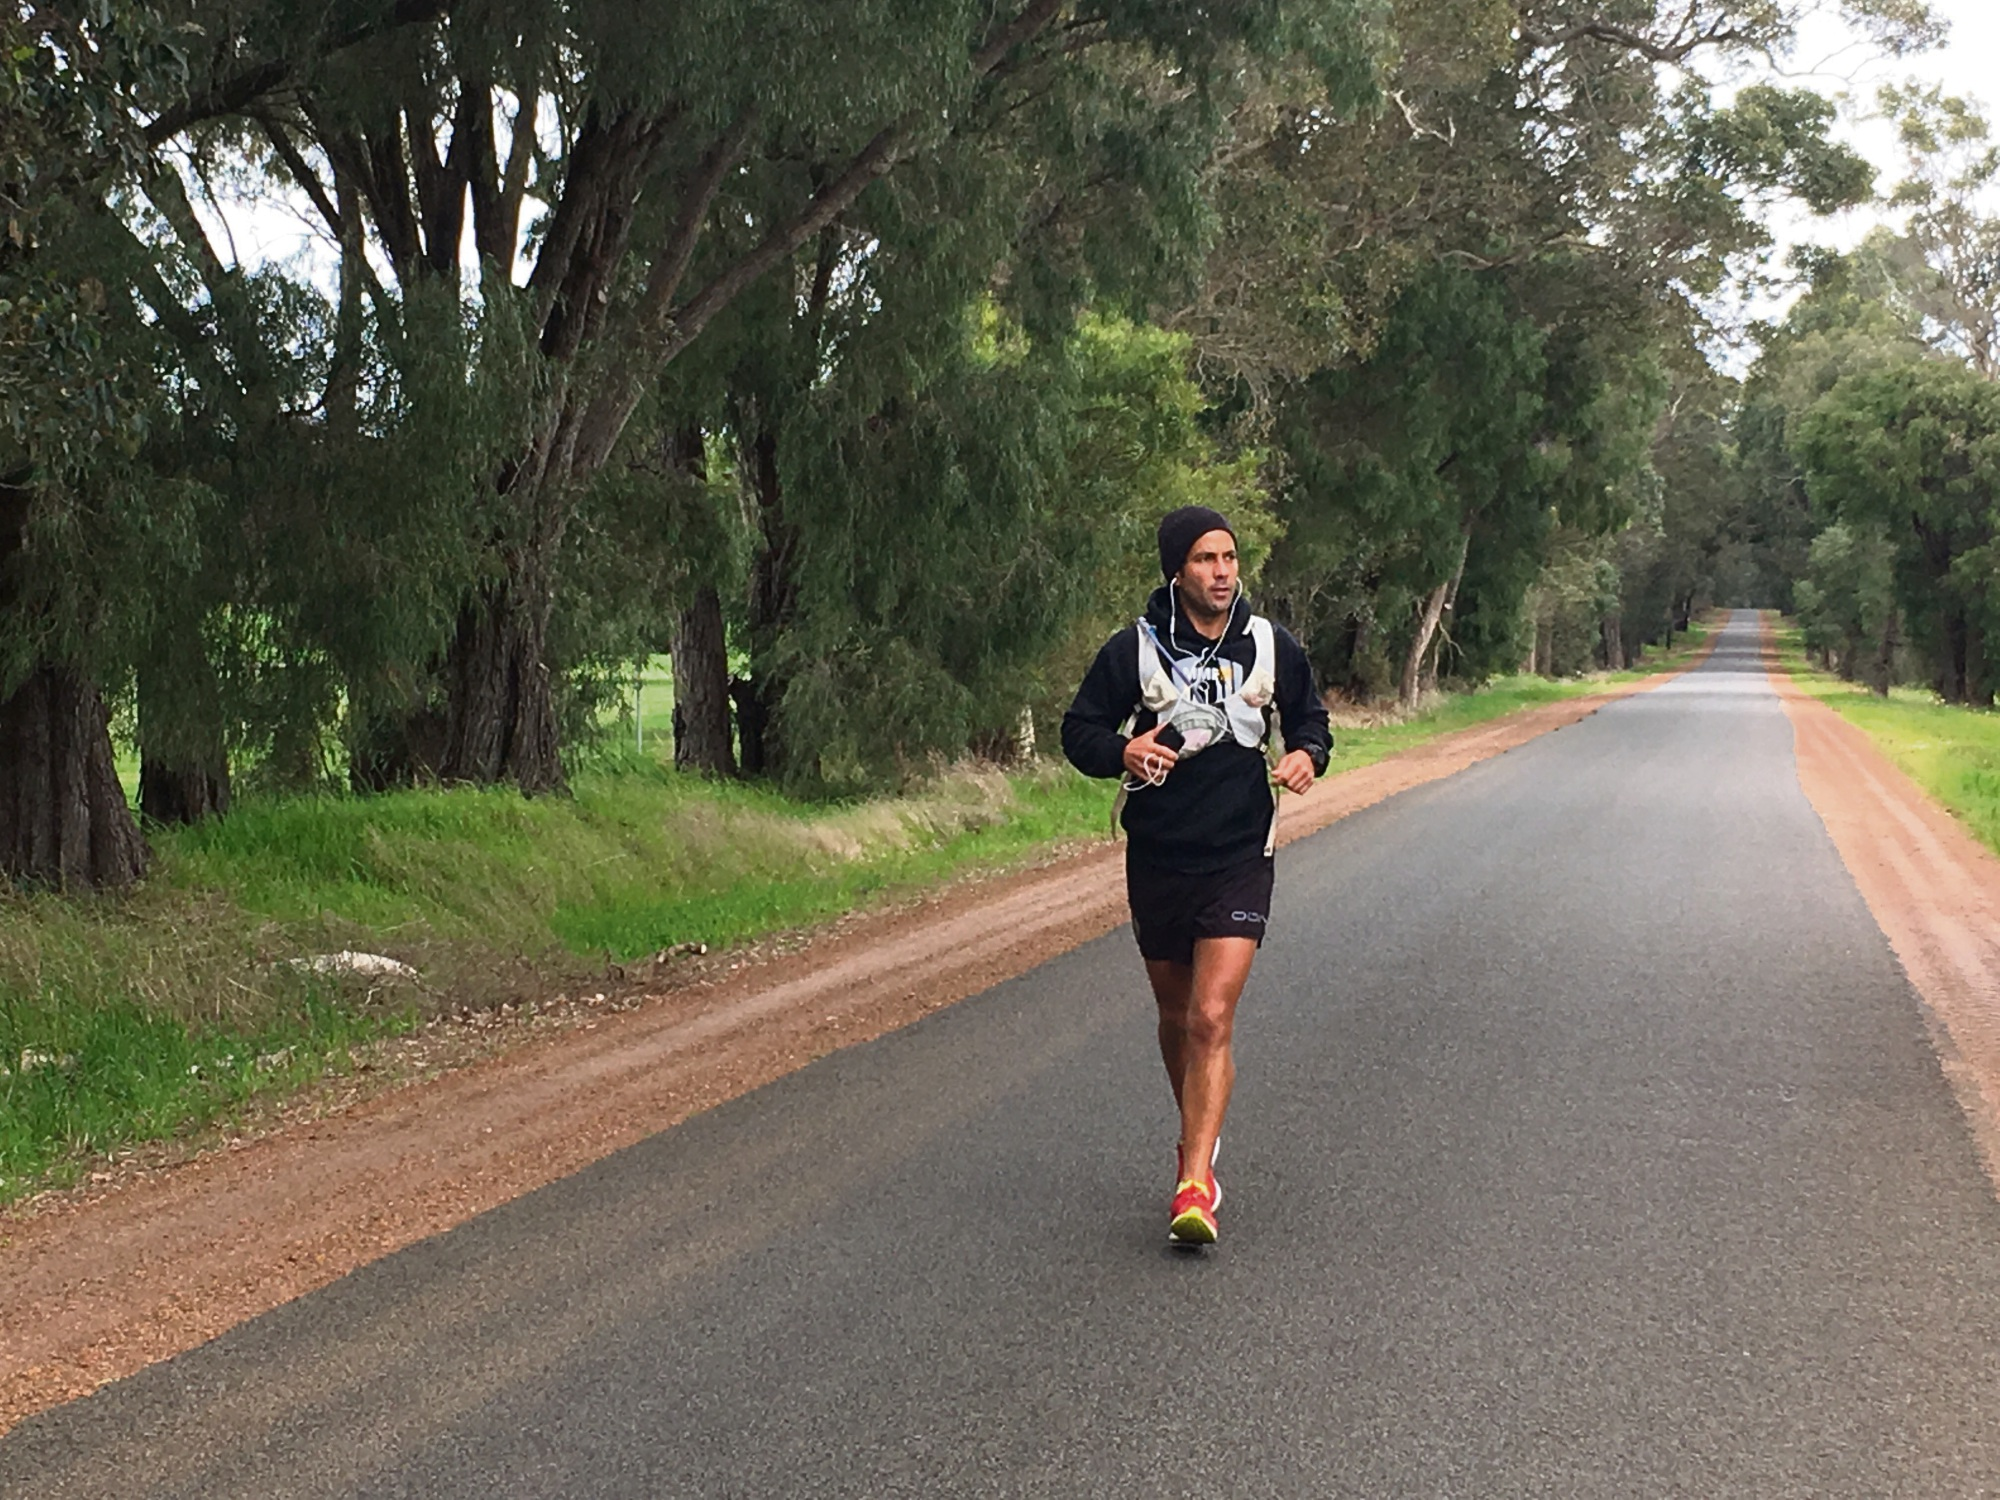 Jamie Milne is raising money for Alzheimer's Australia by running 1800km across the country.